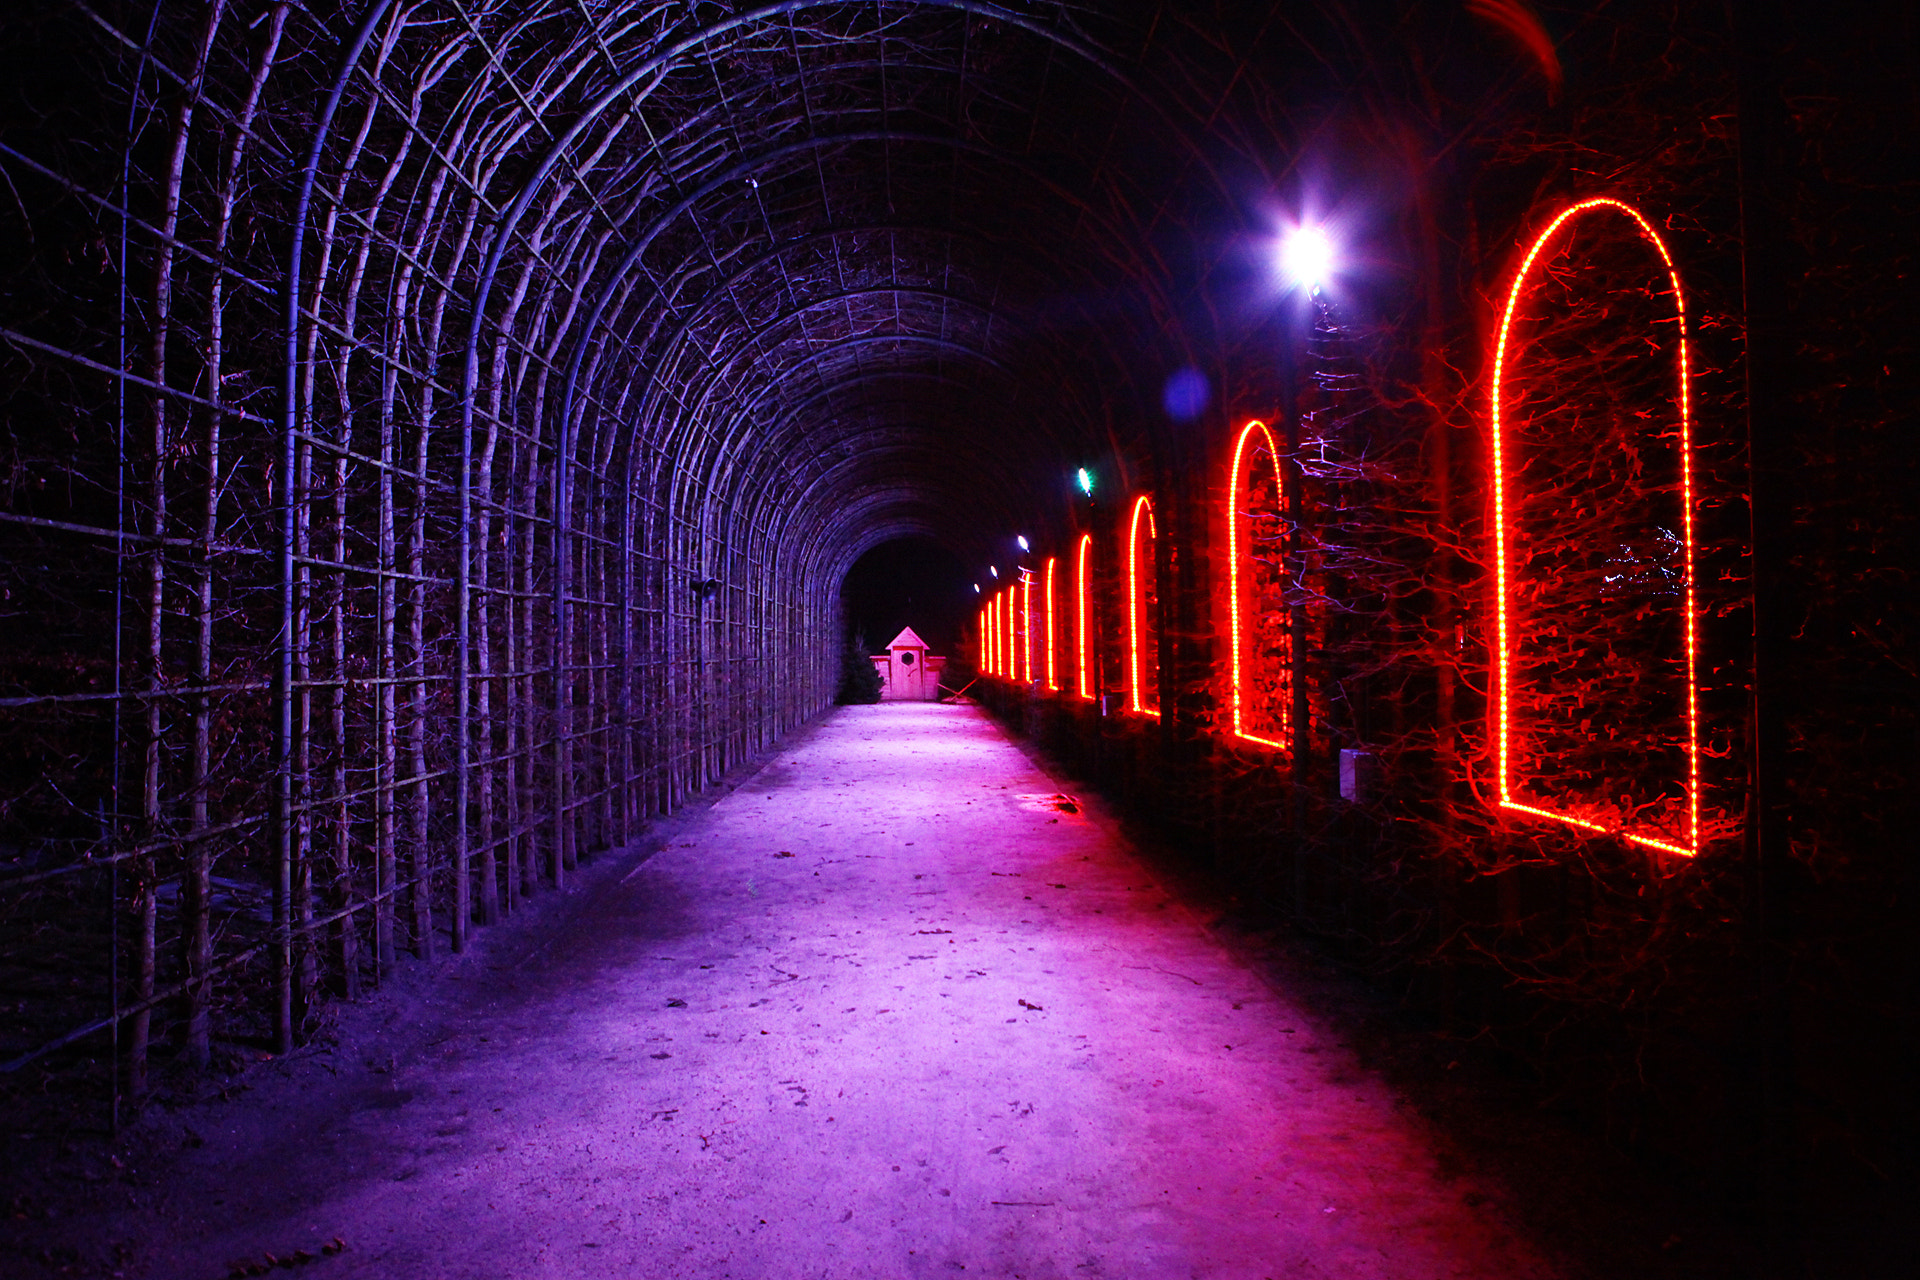 Photograph Tunnel by Martyn Lewis on 500px